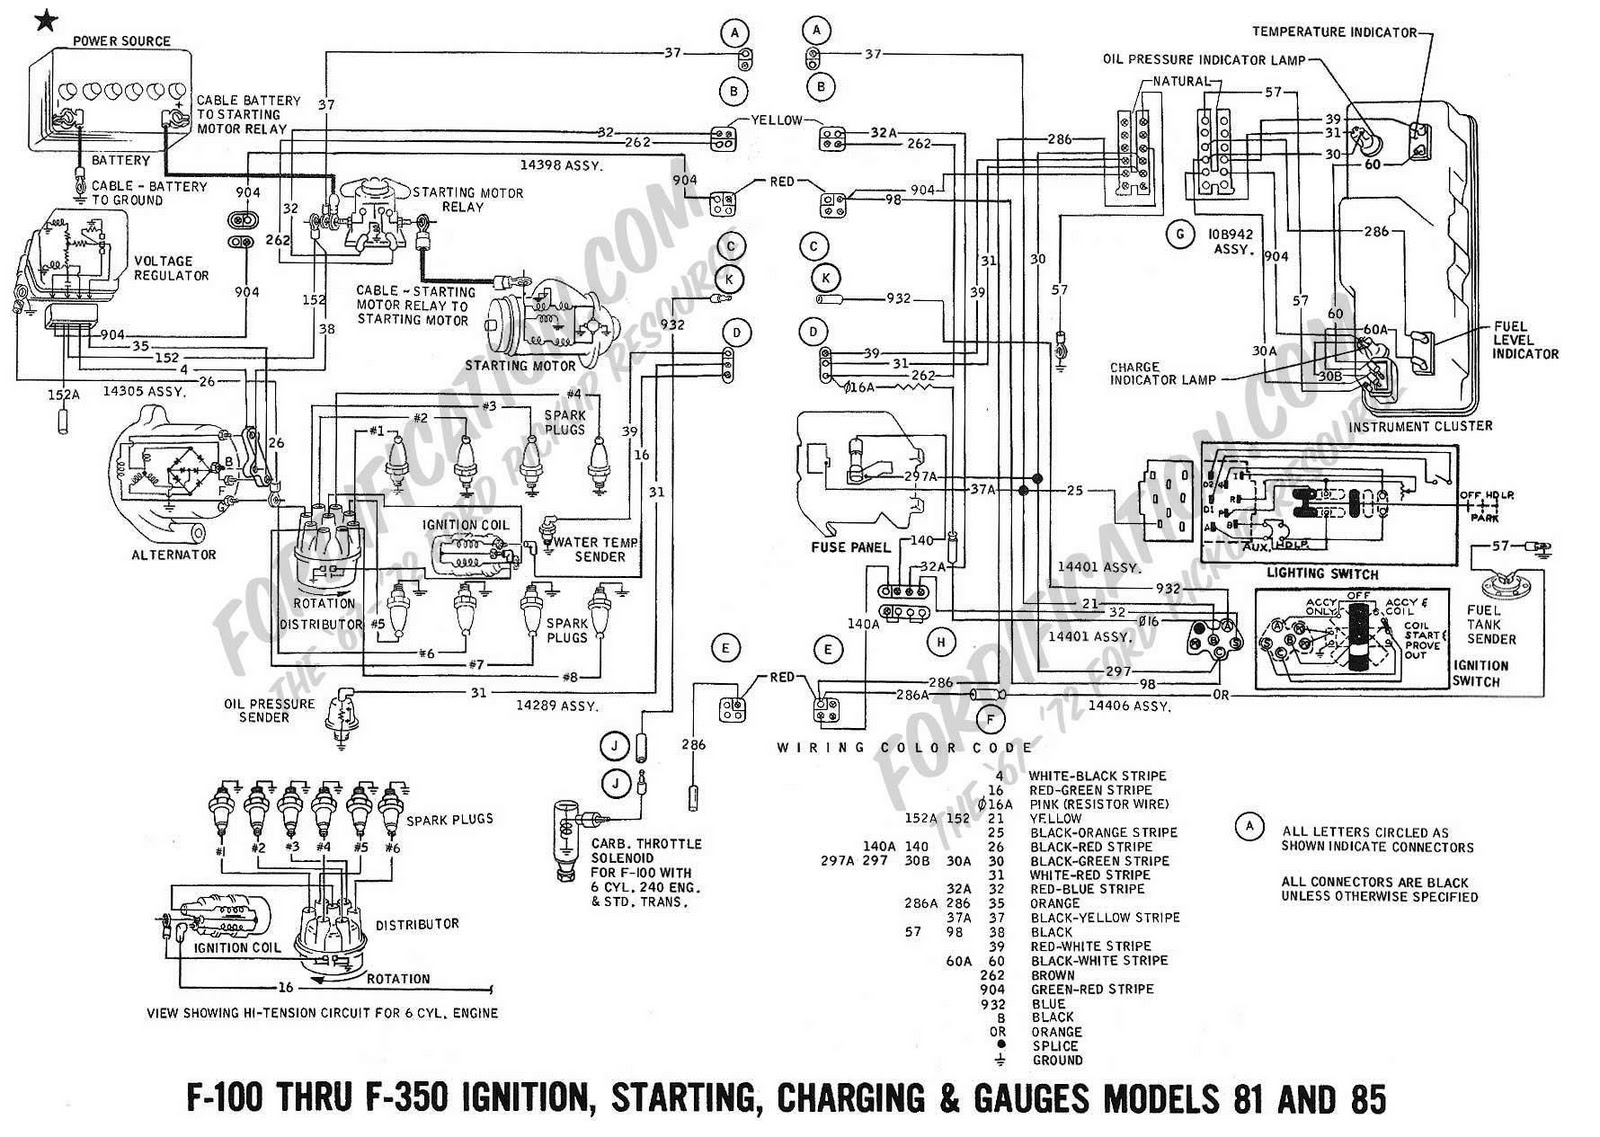 1989 ford mustang alternator wiring diagram wave cut platform 1969 f100-f350 ignition, starting, charging, and gauges | all about ...